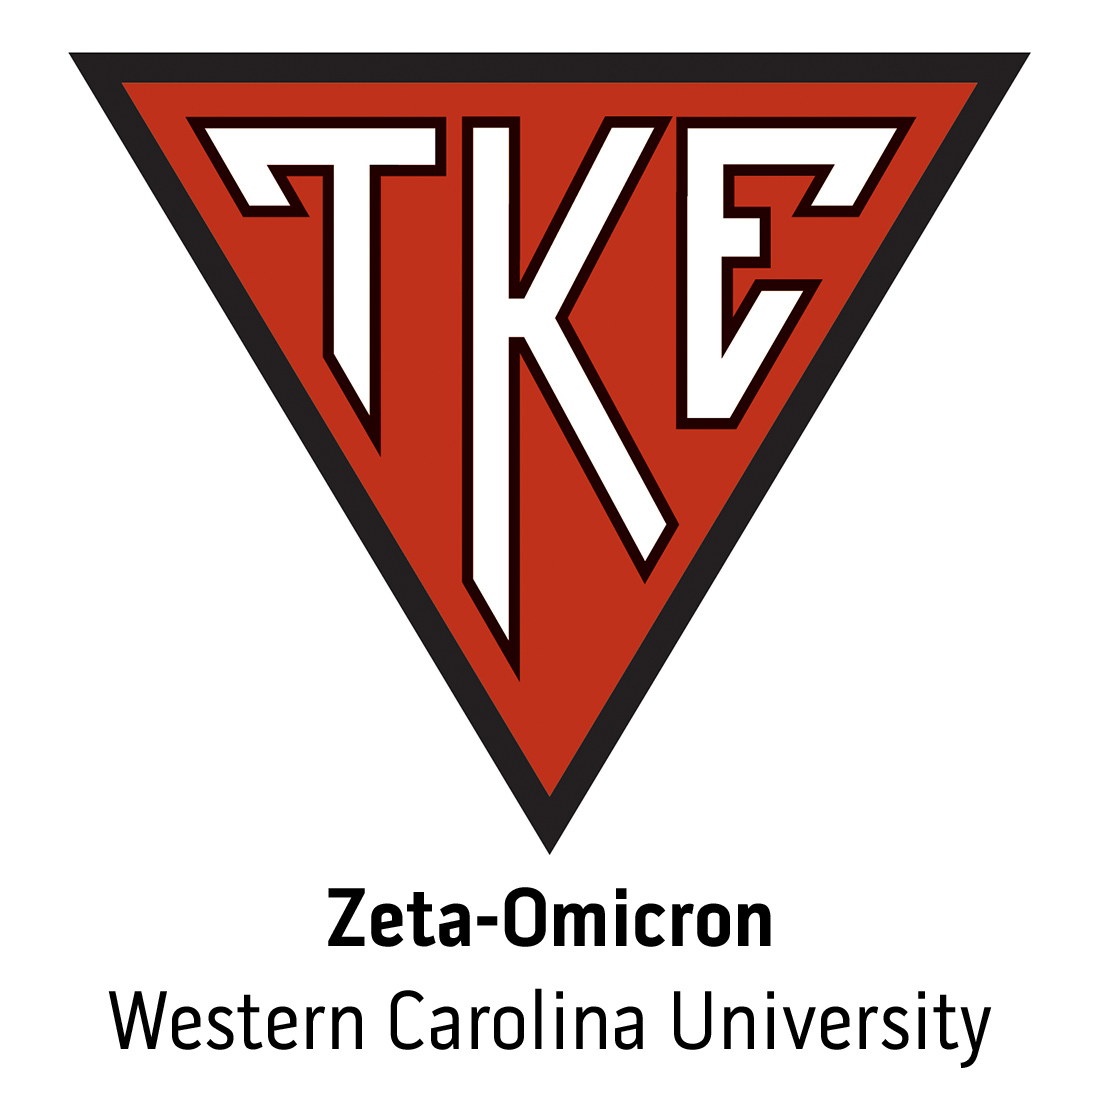 Zeta-Omicron Colony at Western Carolina University